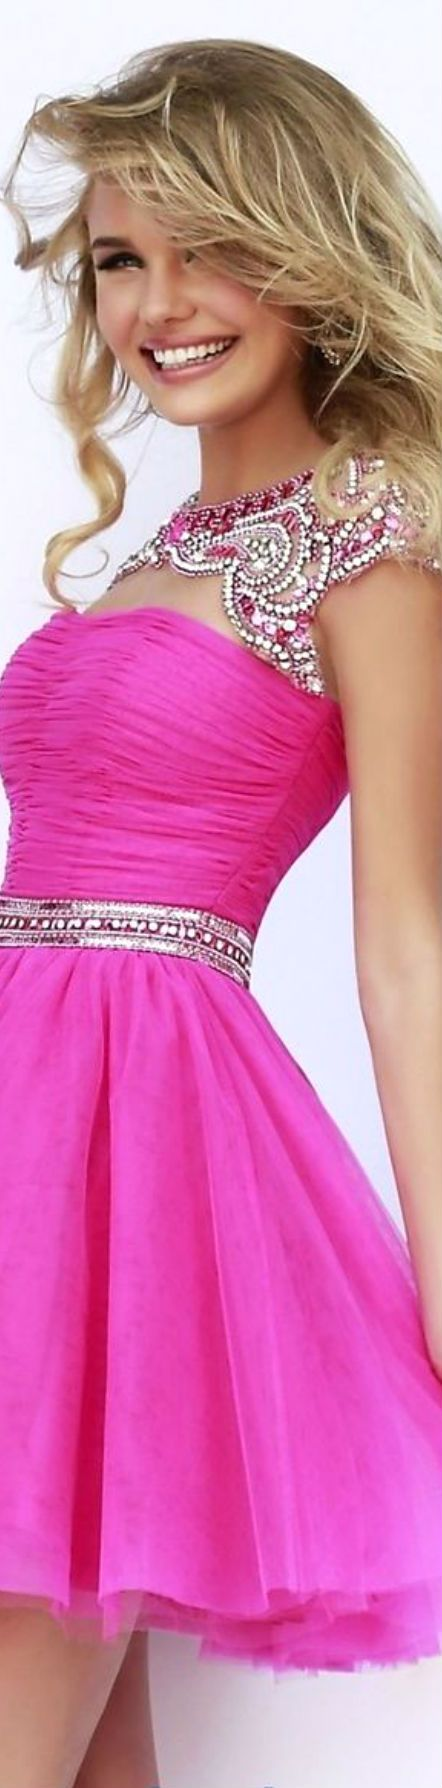 643 best PROM images on Pinterest | Party wear dresses, Formal ...